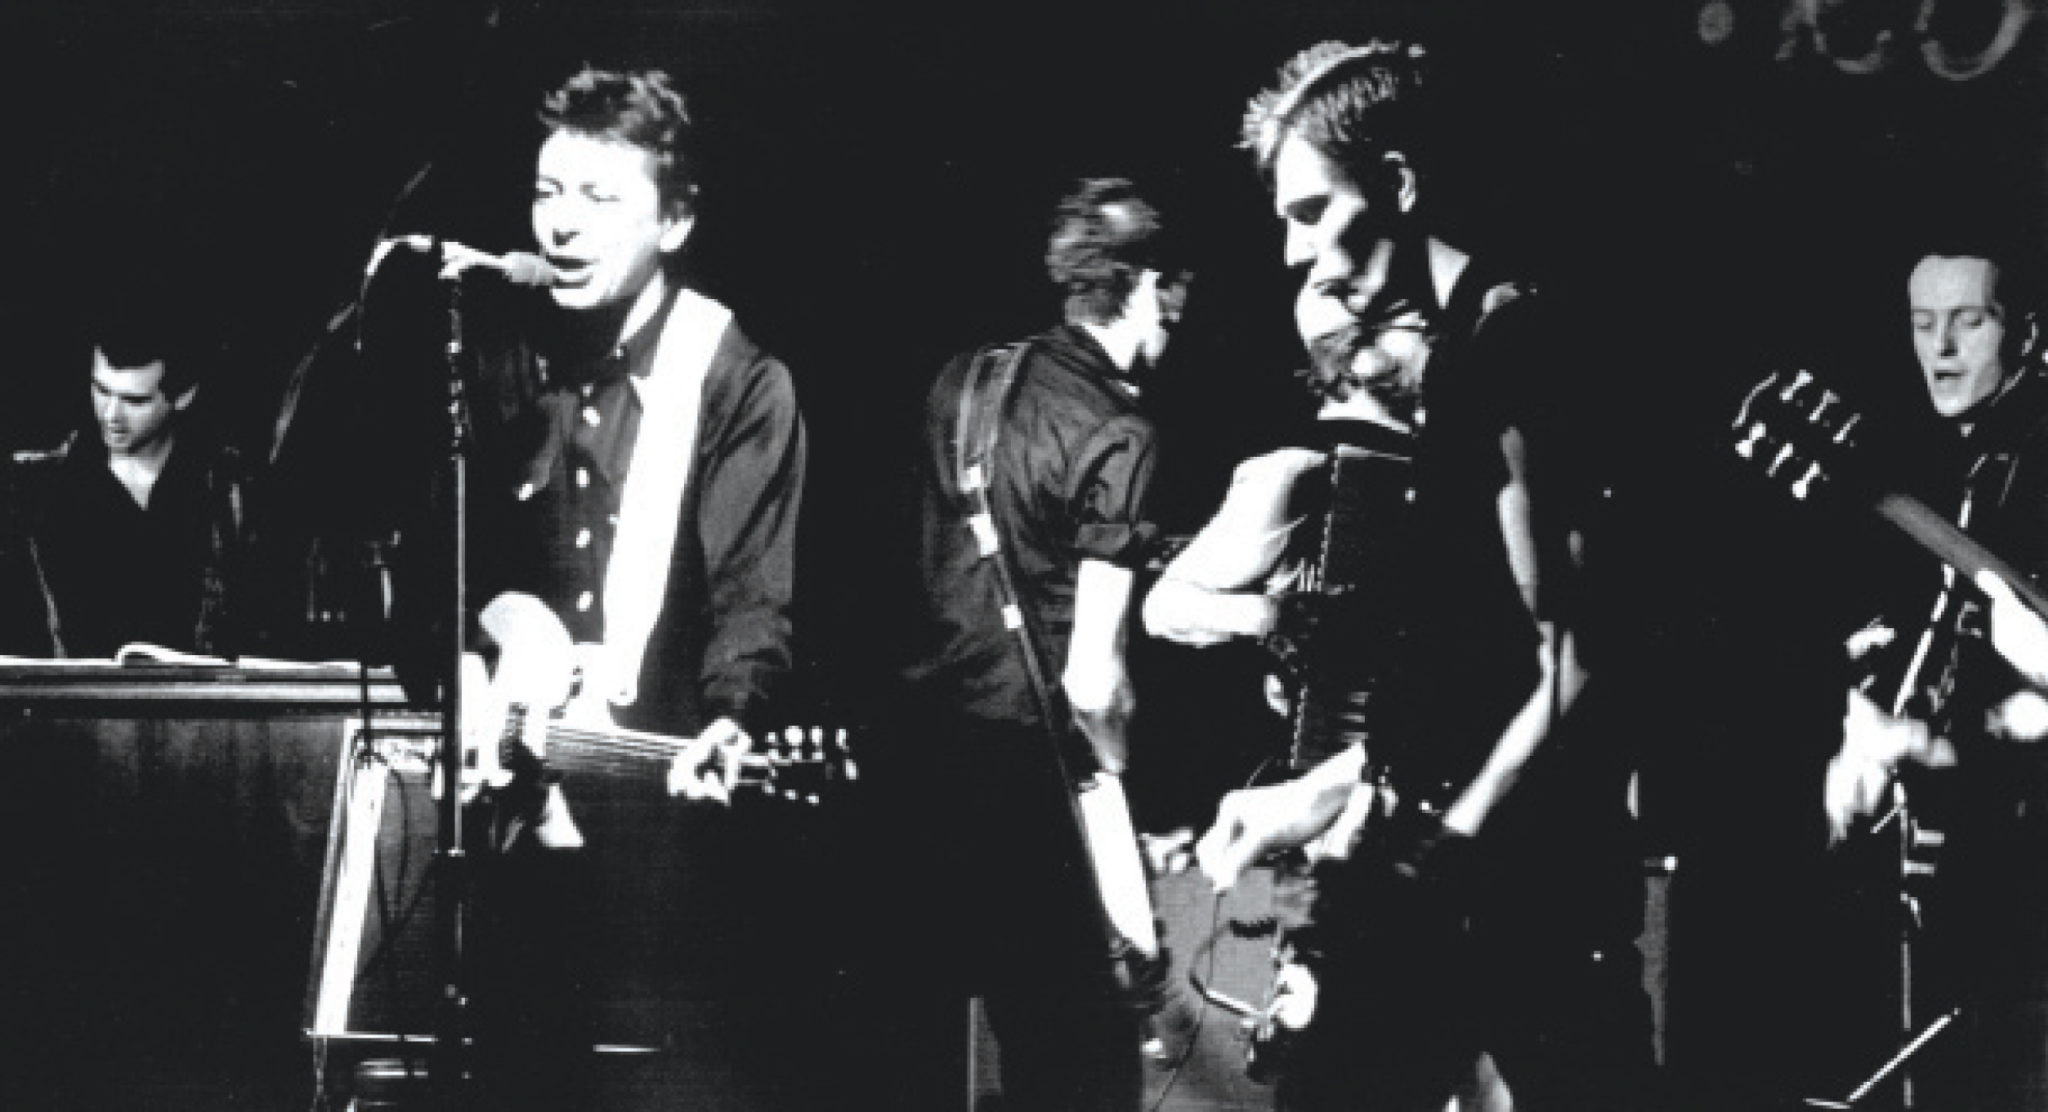 Joe Ely onstage with the Clash in Lubbock in 1979. (Photo by Milton Adams)